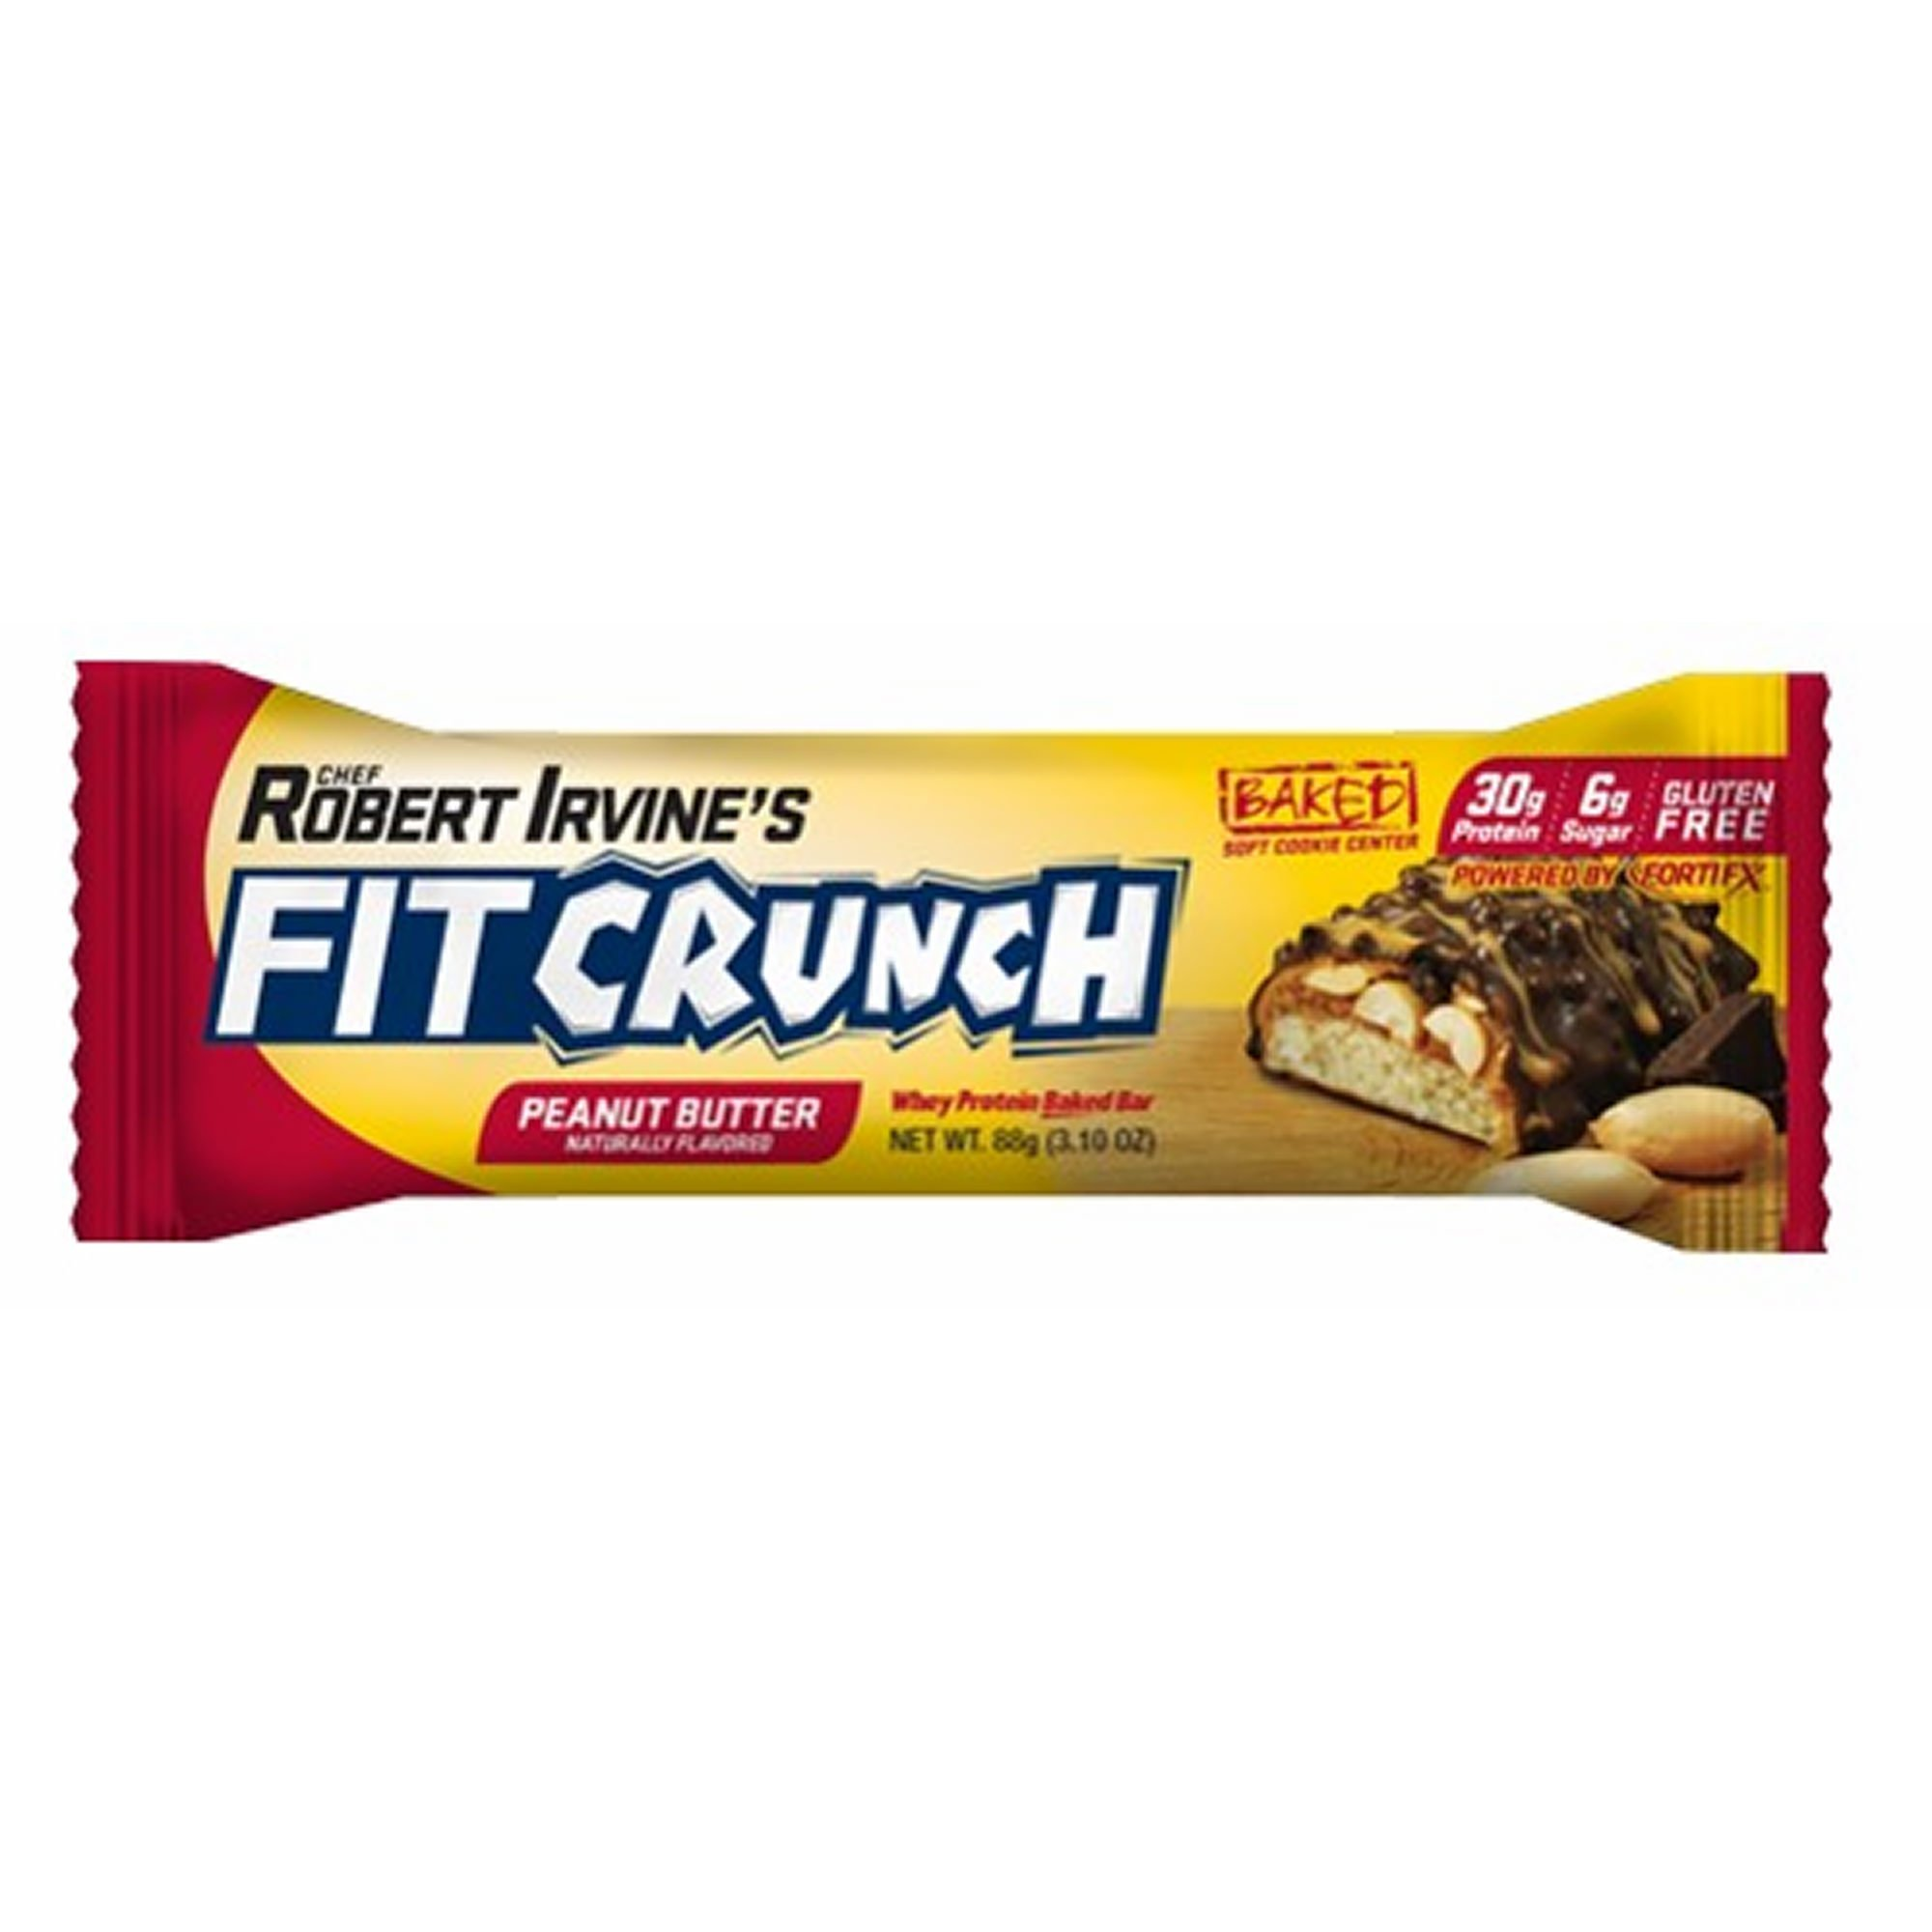 FITCRUNCH ( 2 PACK SUPER SAVER ) Snack Size Protein Bars | Designed by Robert Irvine | World's Only 6-Layer Baked Bar | Just 3g of Sugar & Soft Cake Core (18 Snack Size Bars